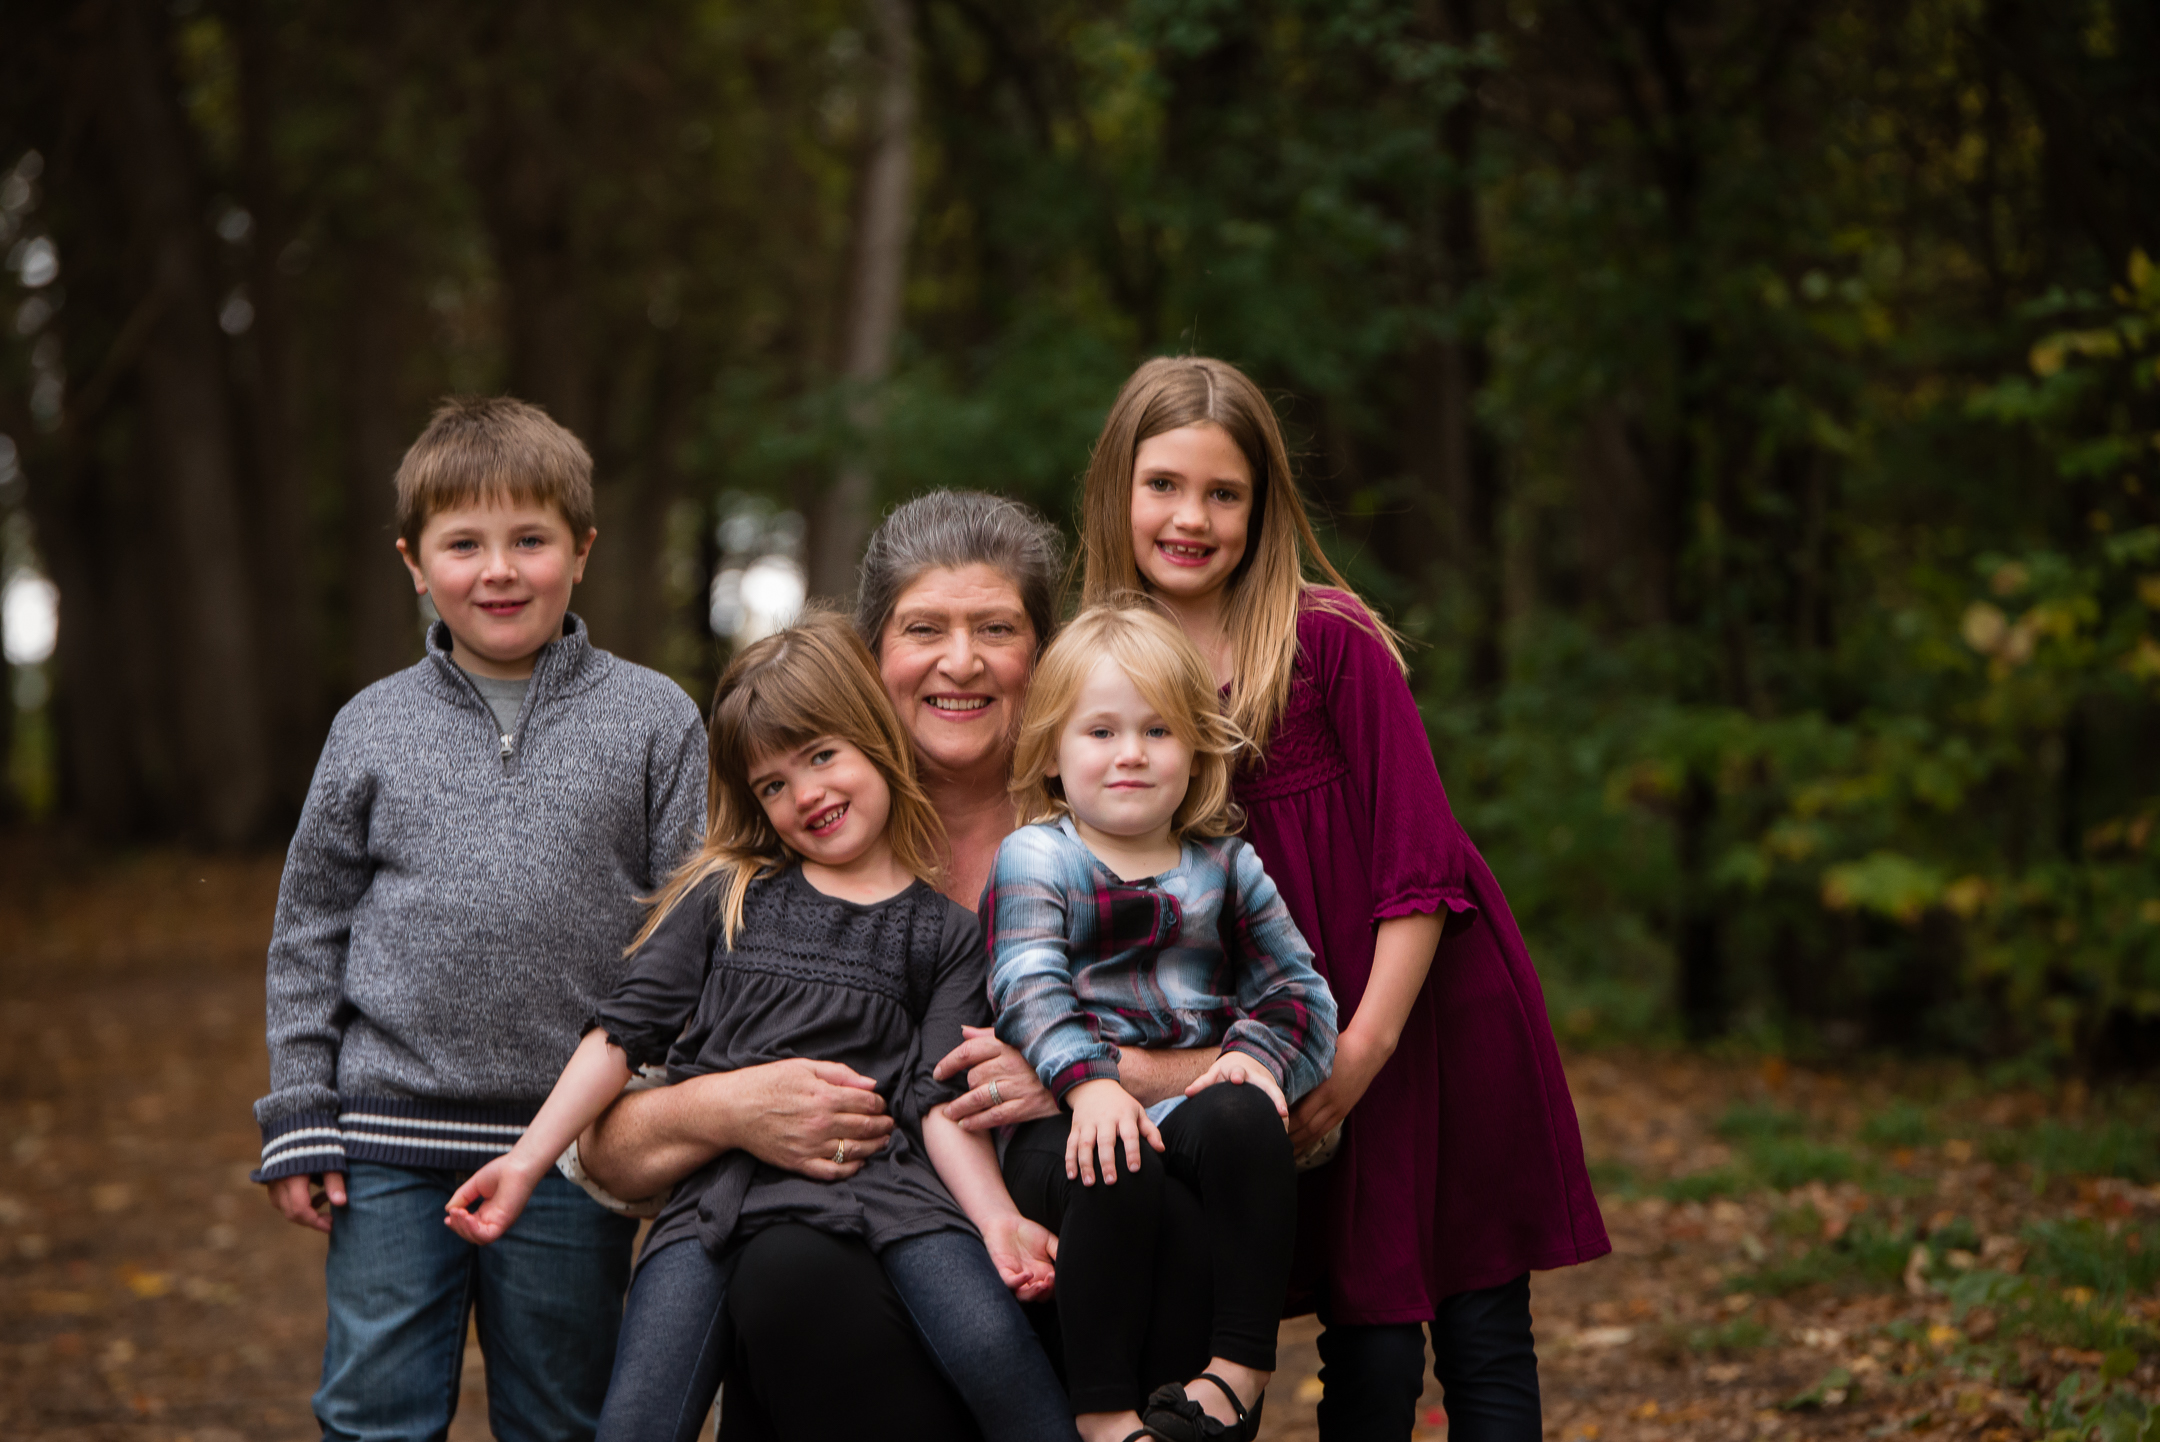 Naomi Lucienne Photography - Extended Family - 171007286.jpg